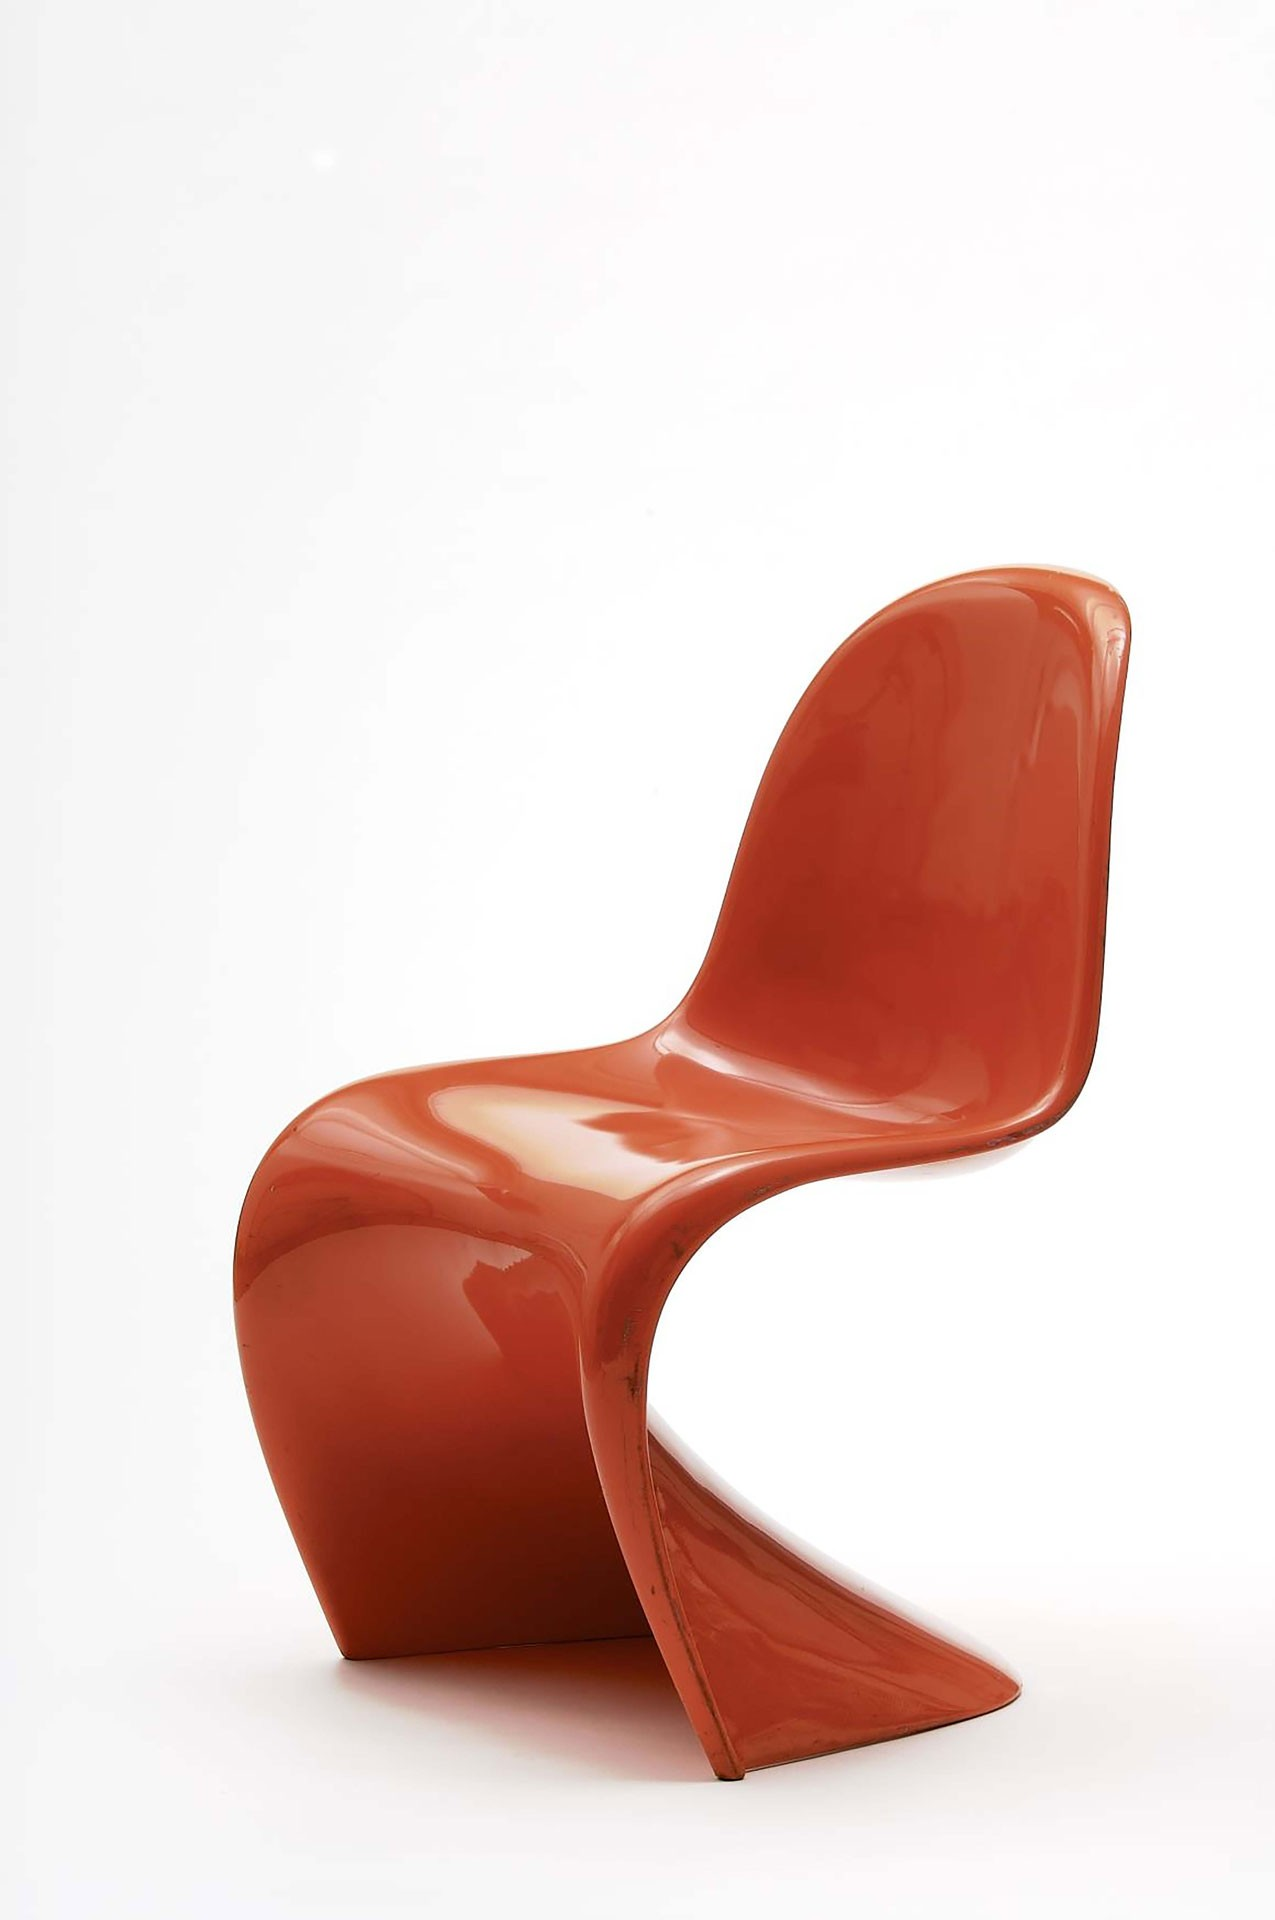 <BODY>Verner Panton, <em>Panton Chair, </em>Kopenhagen, 1967<br />Polyurethan, orange lackiert<br />© MAK/Georg Mayer</BODY>